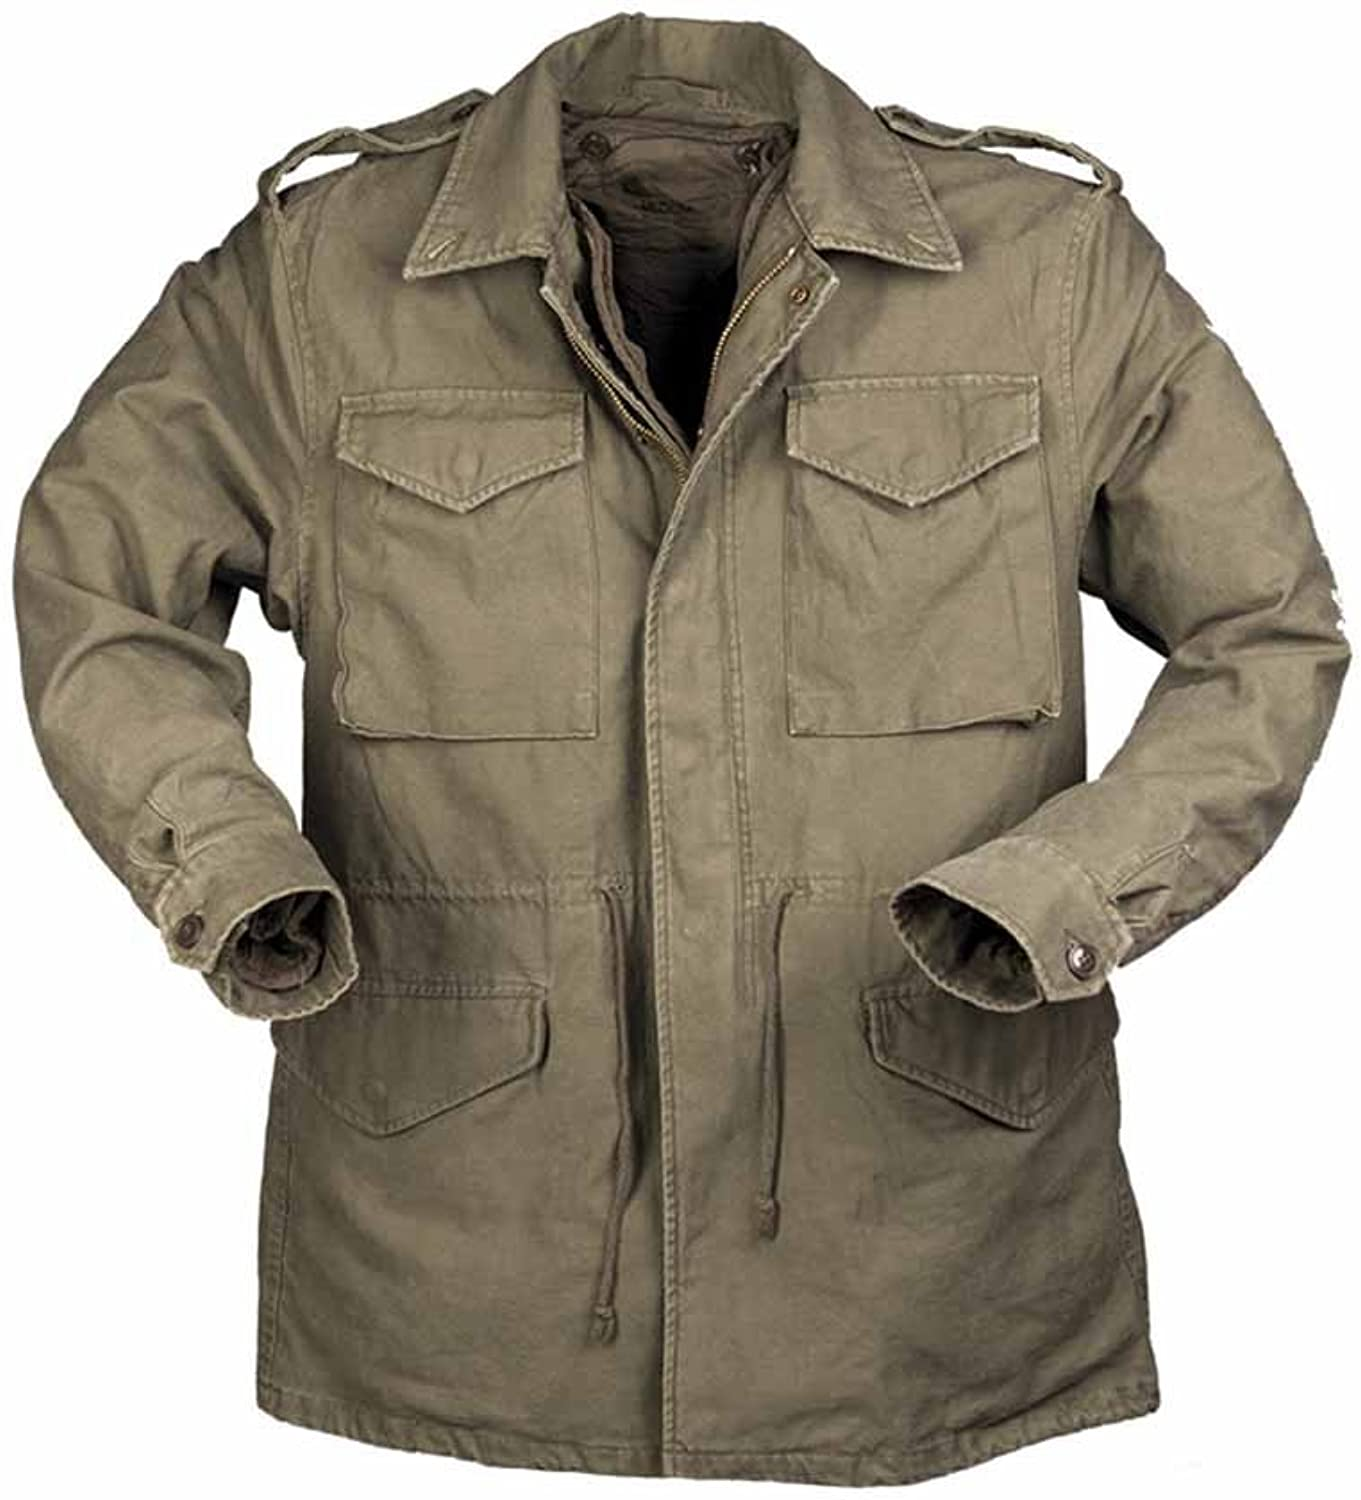 US field jacket M51 pre-washed with lining in olive green